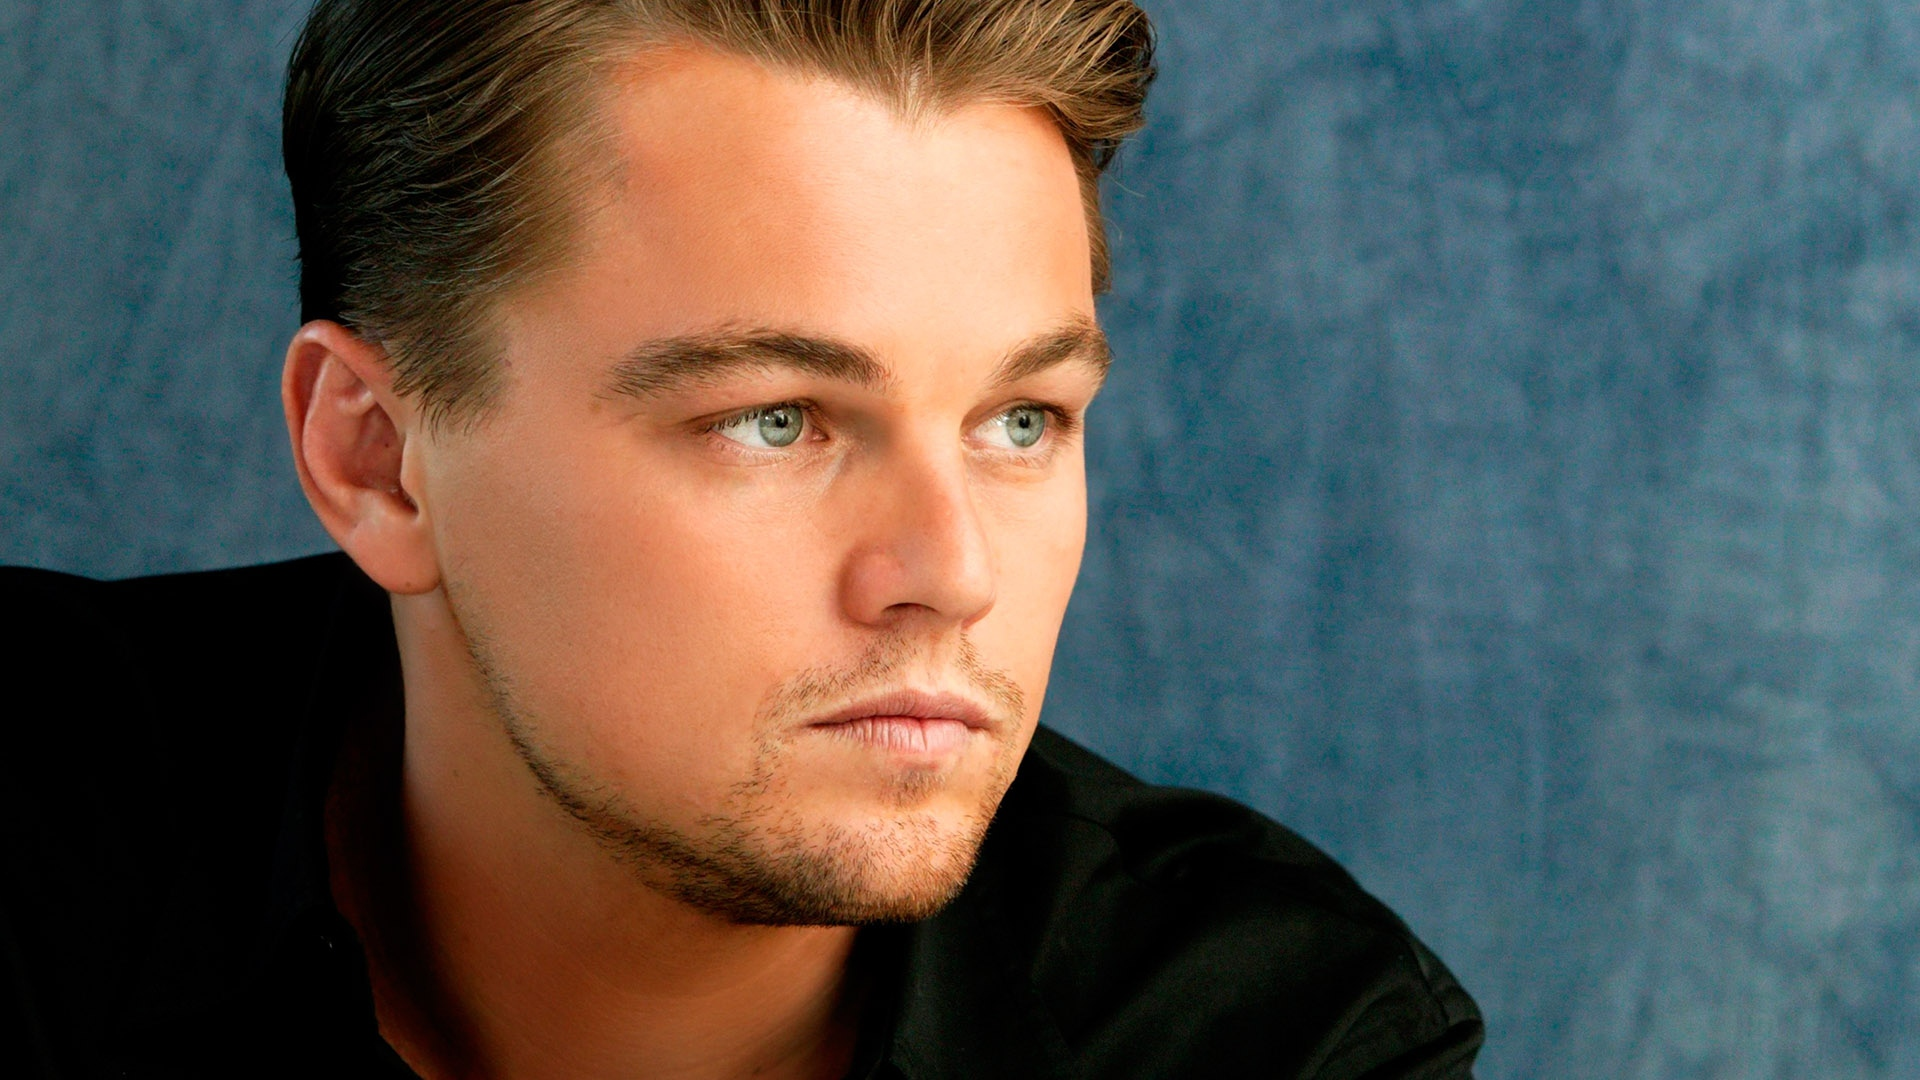 download wallpaper 1920x1080 leonardo dicaprio, man, pensive, face